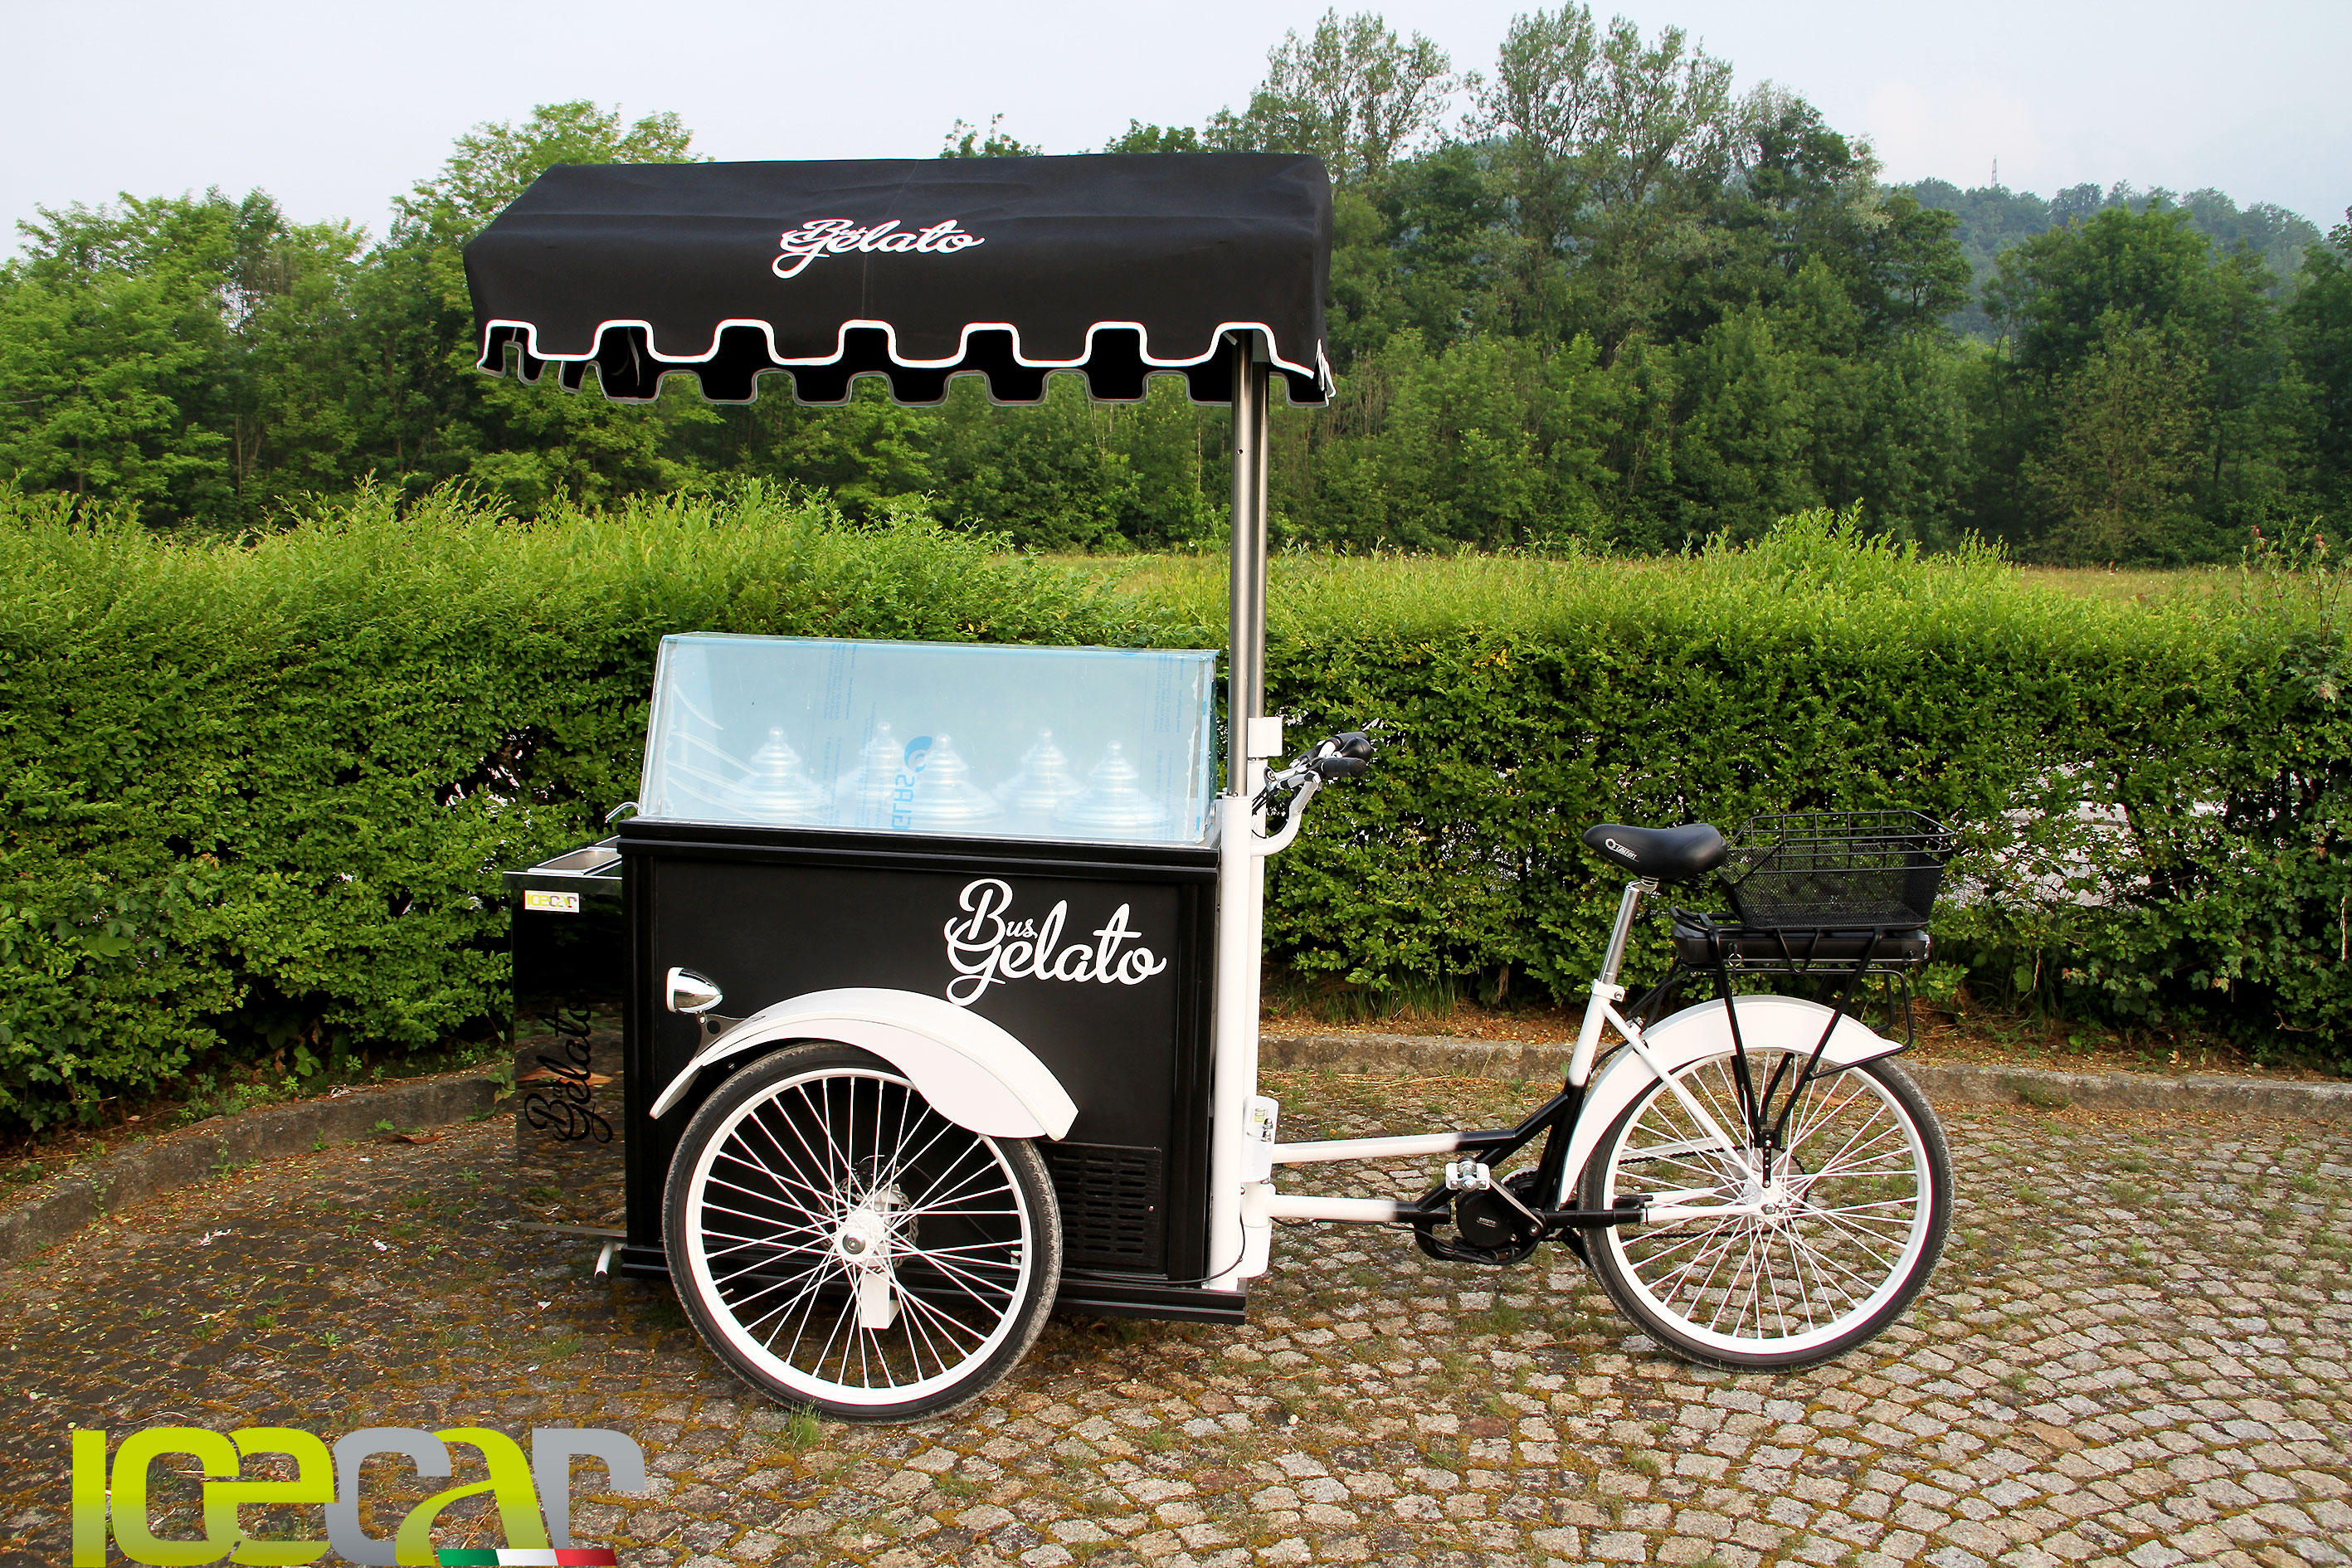 Carretto Gelati Bike Finlandia